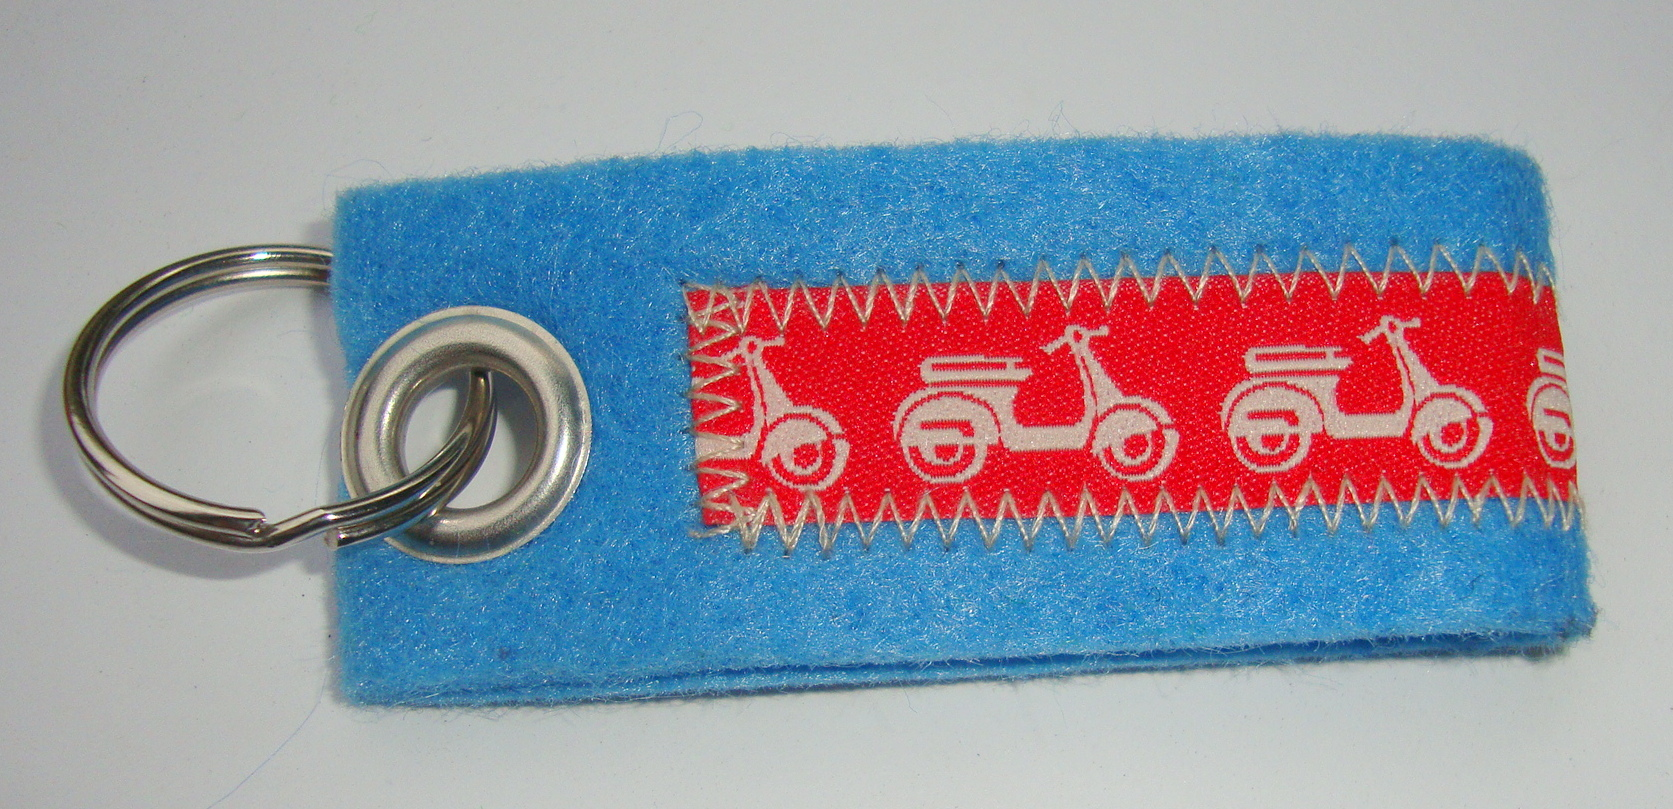 Key ring, felt, light blue, Vespa, red white